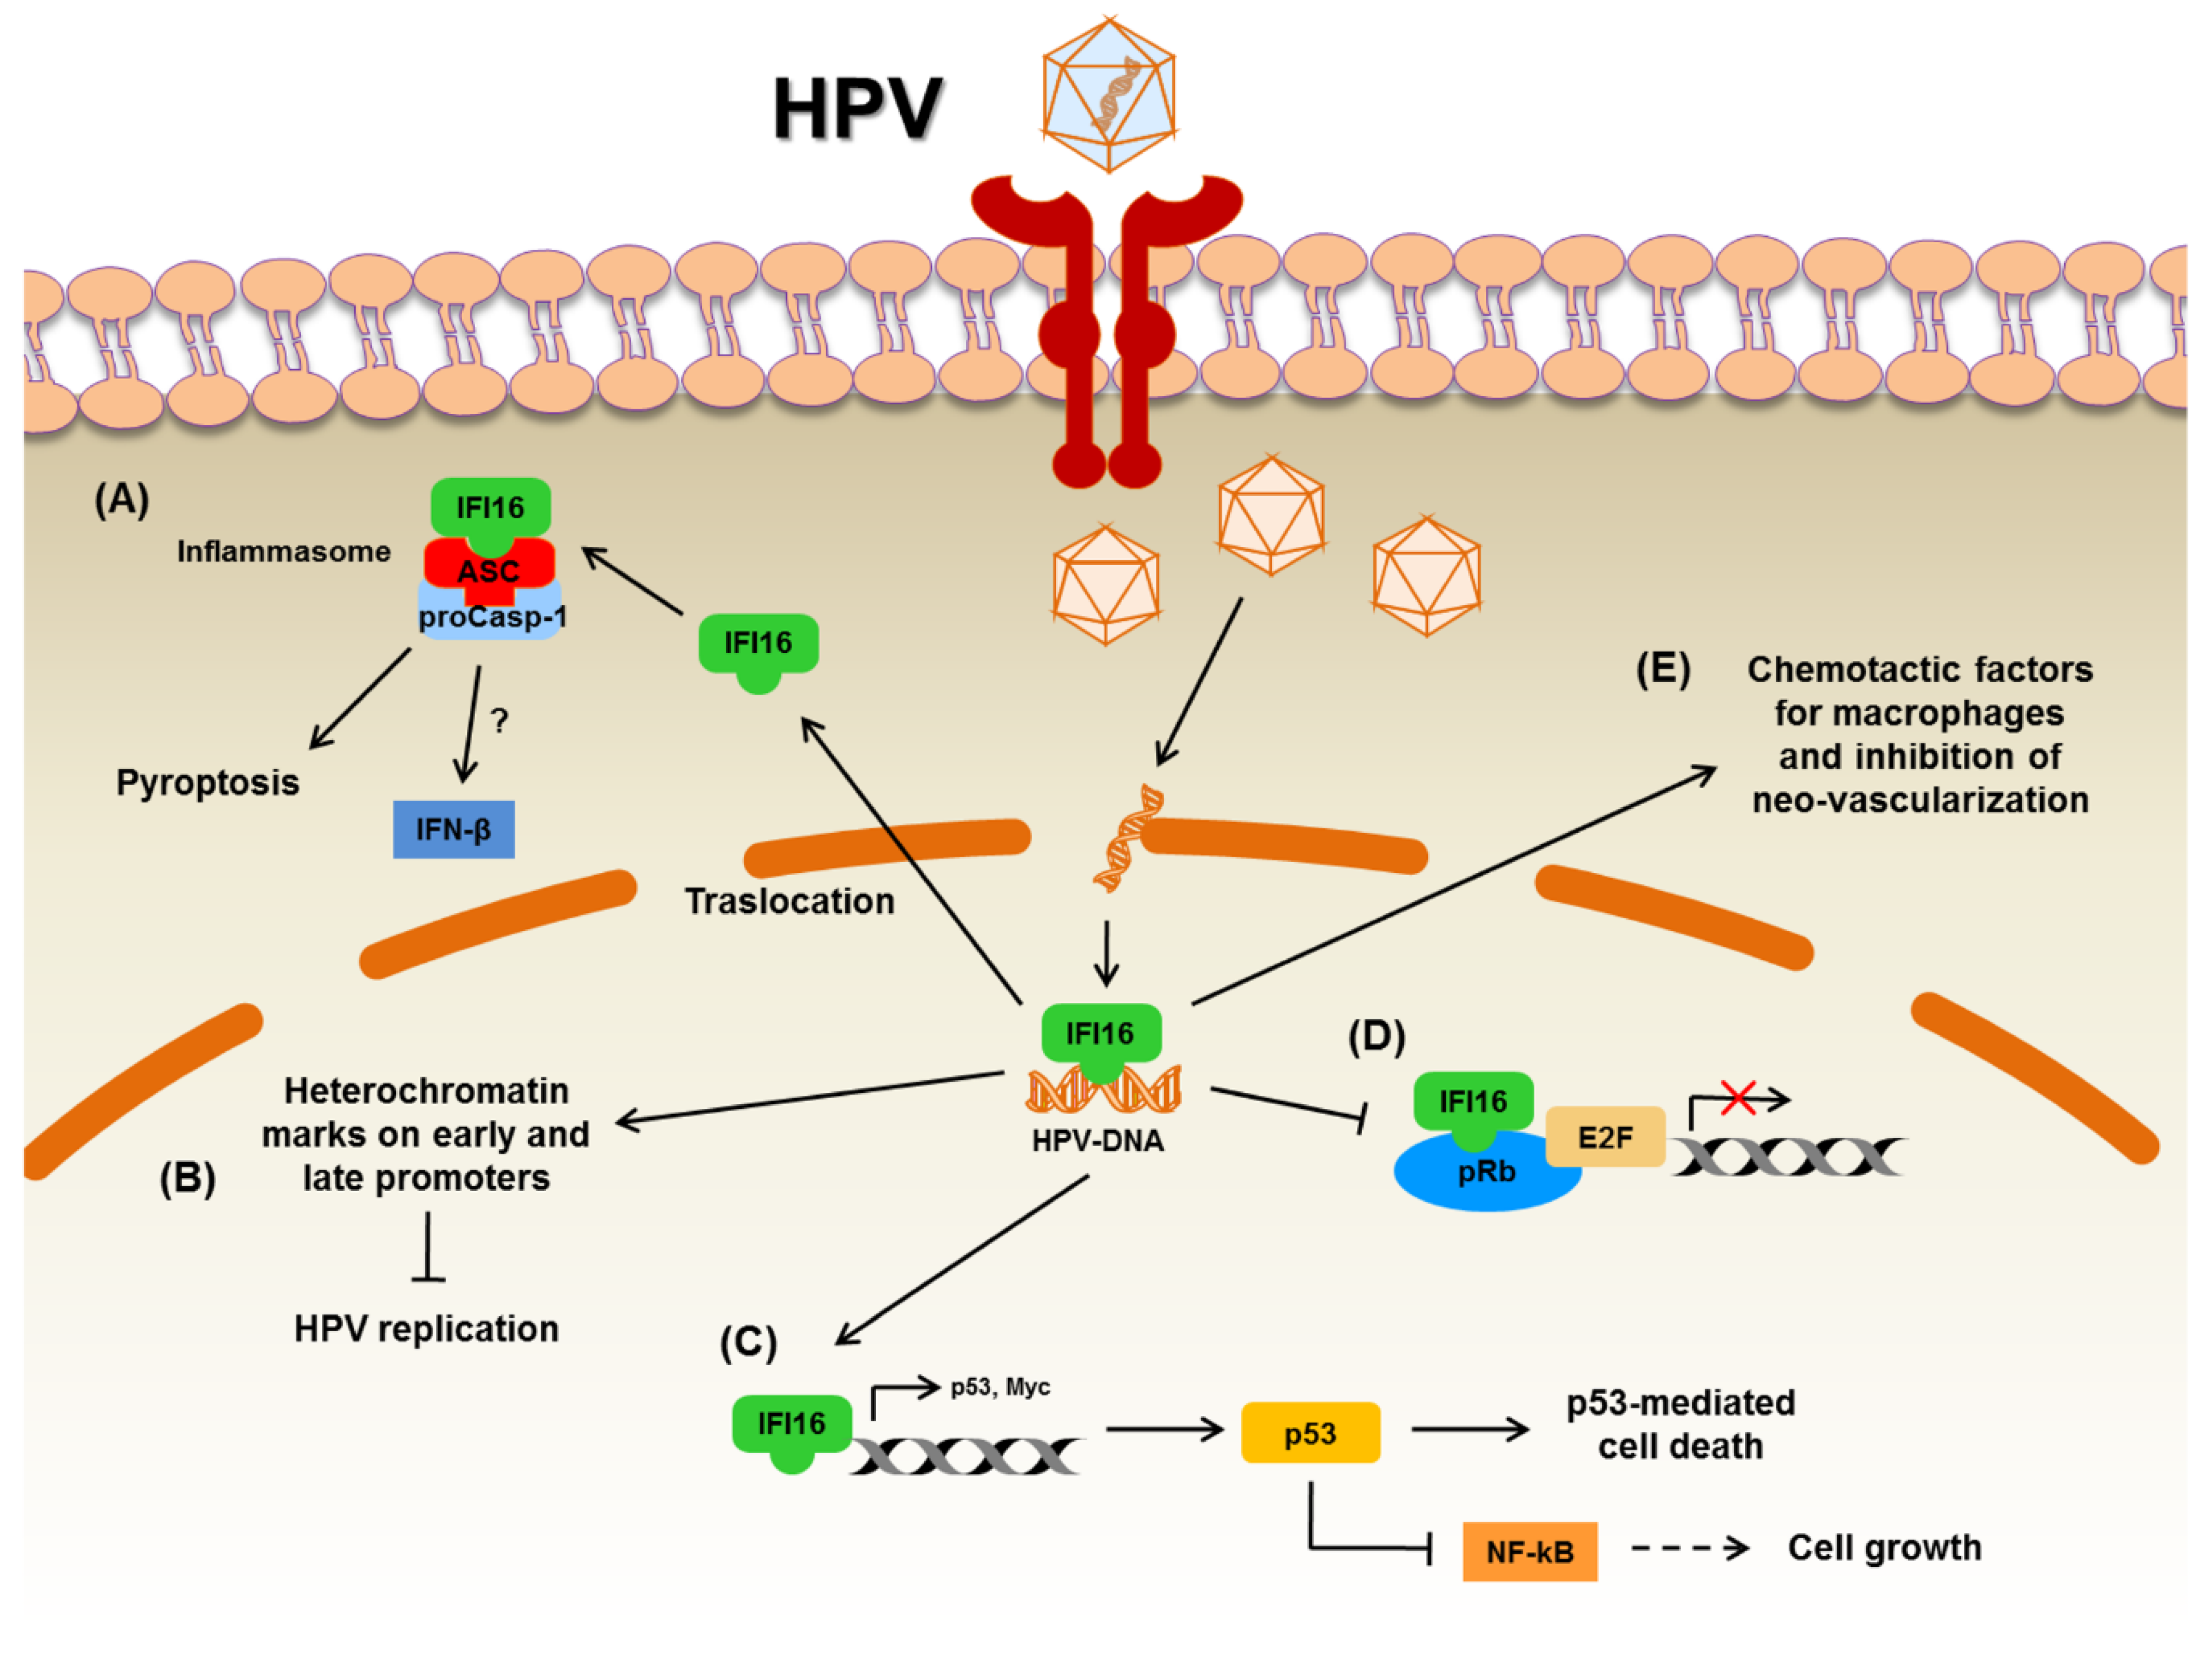 Hpv growth in throat - Hpv and growth